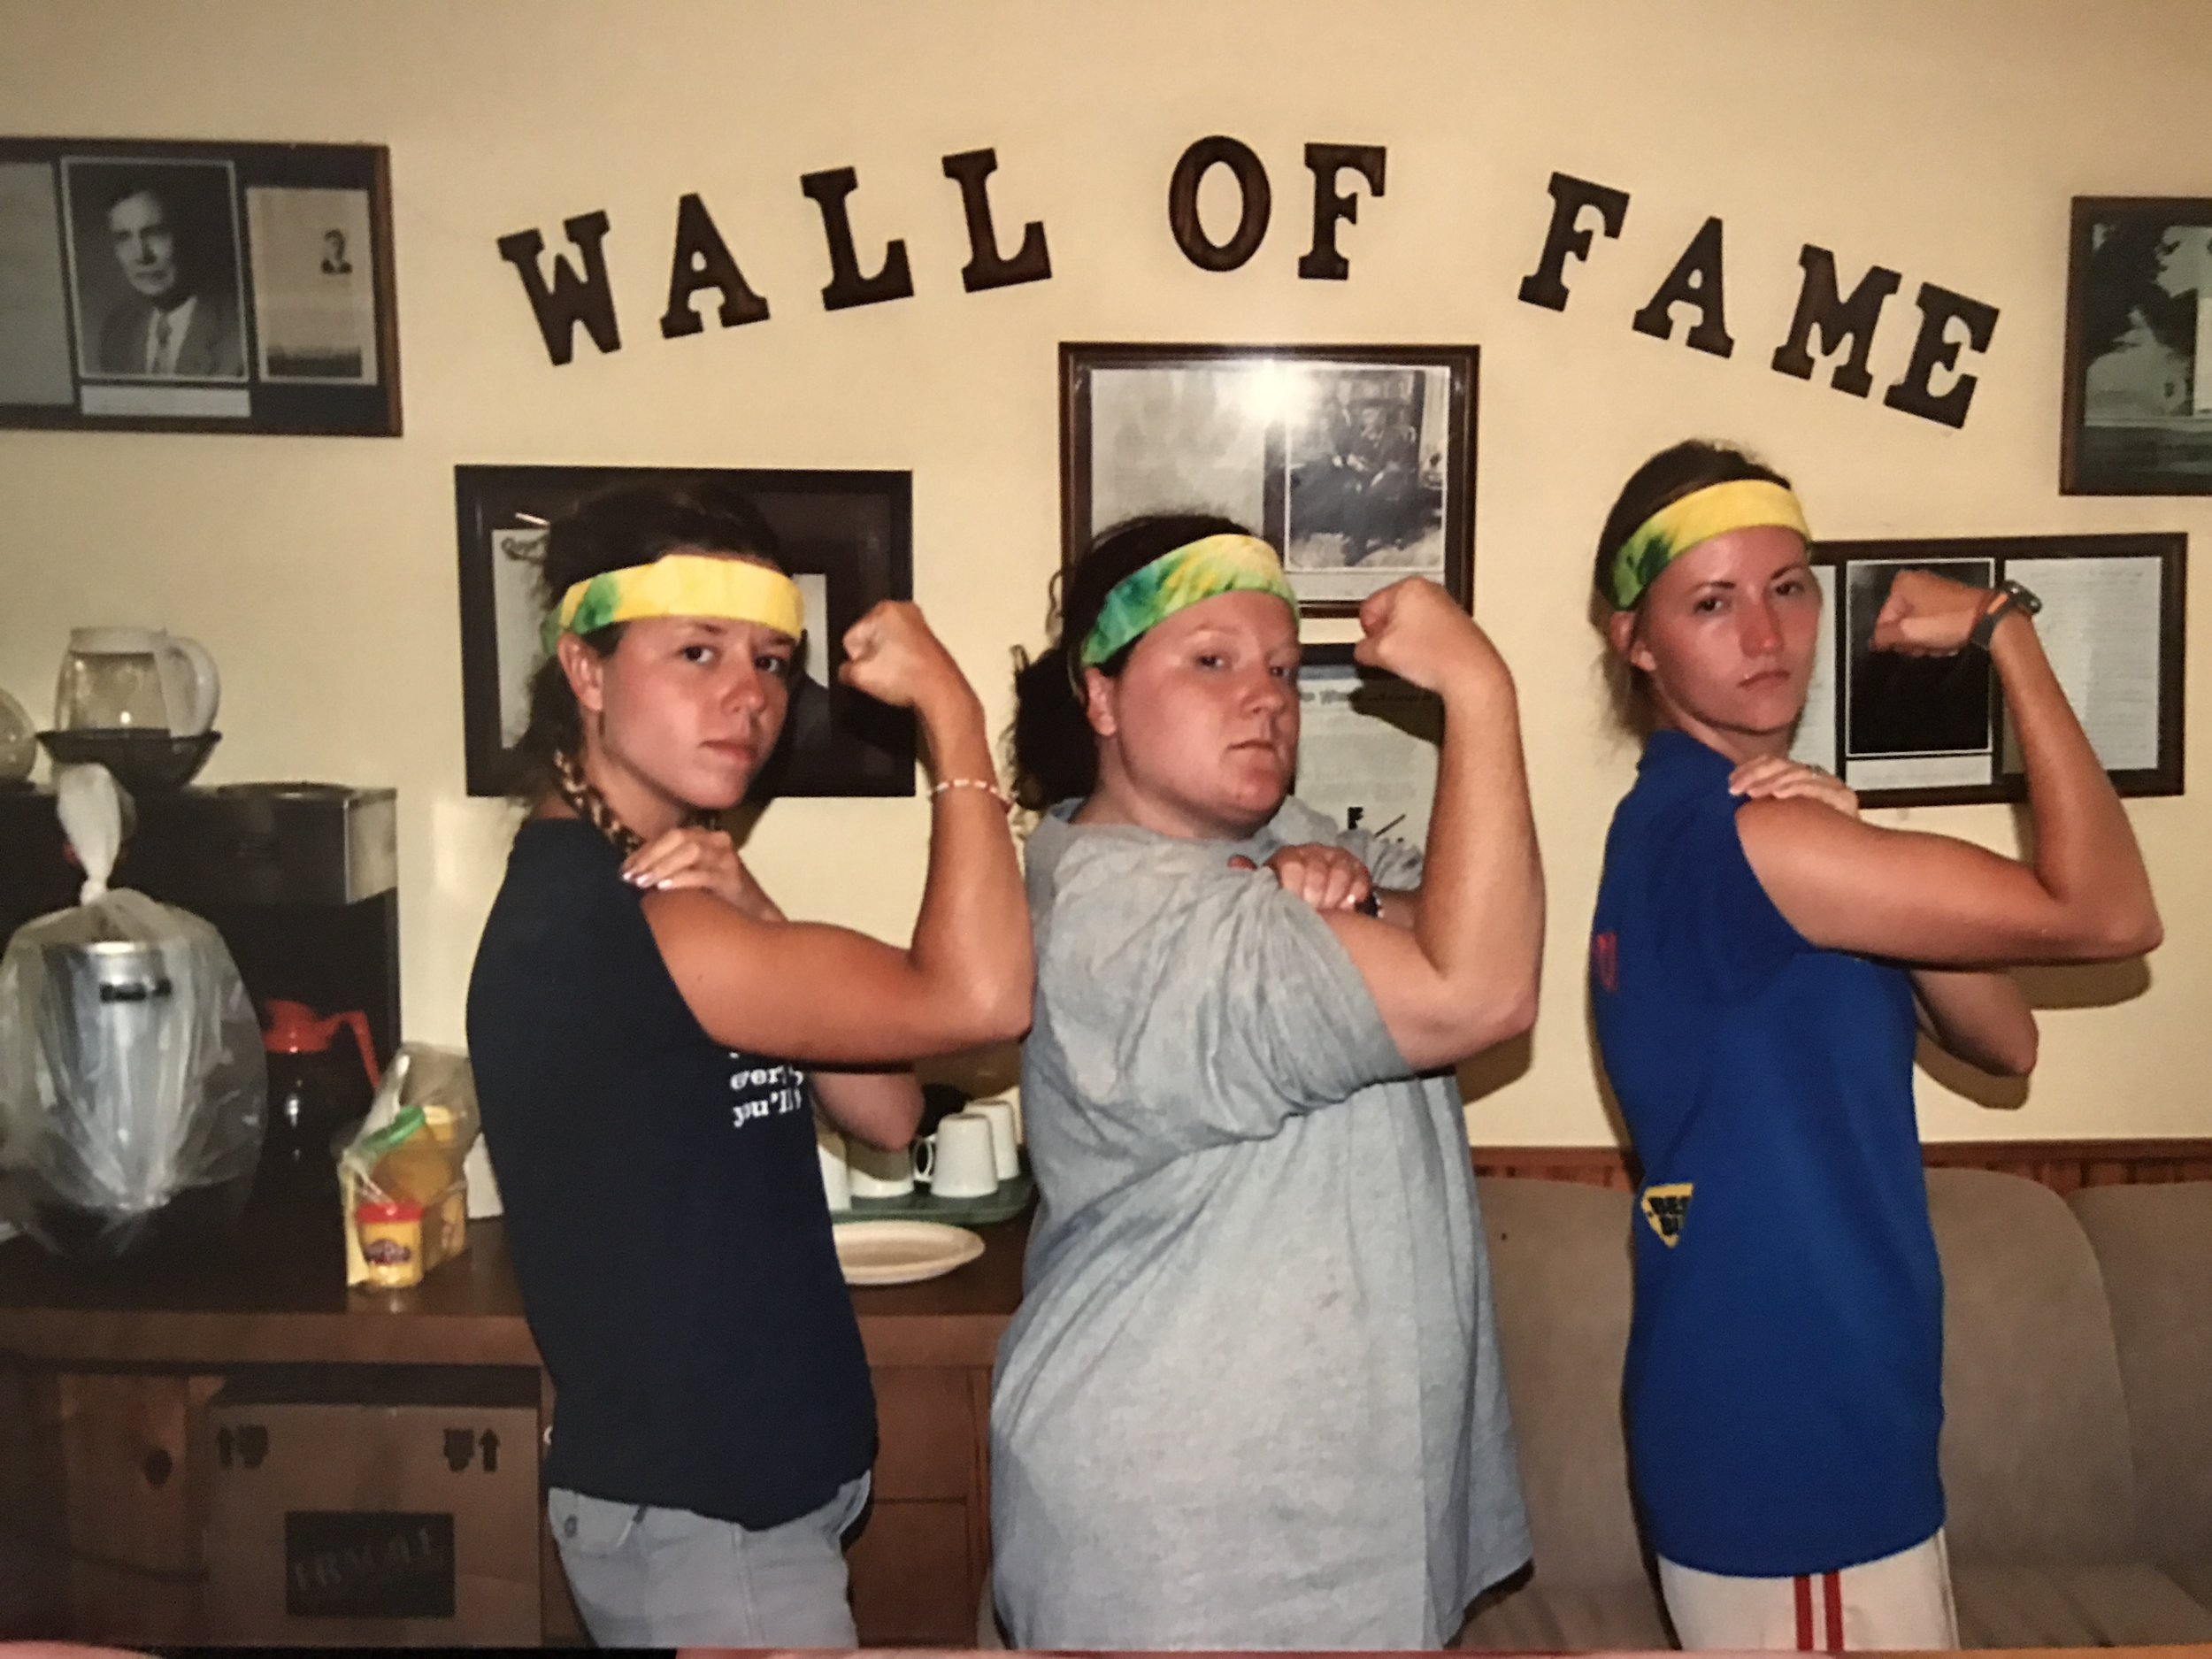 Sarah and fellow staff members, Jessica and jill, flex their muscles for the camera in jones lodge.